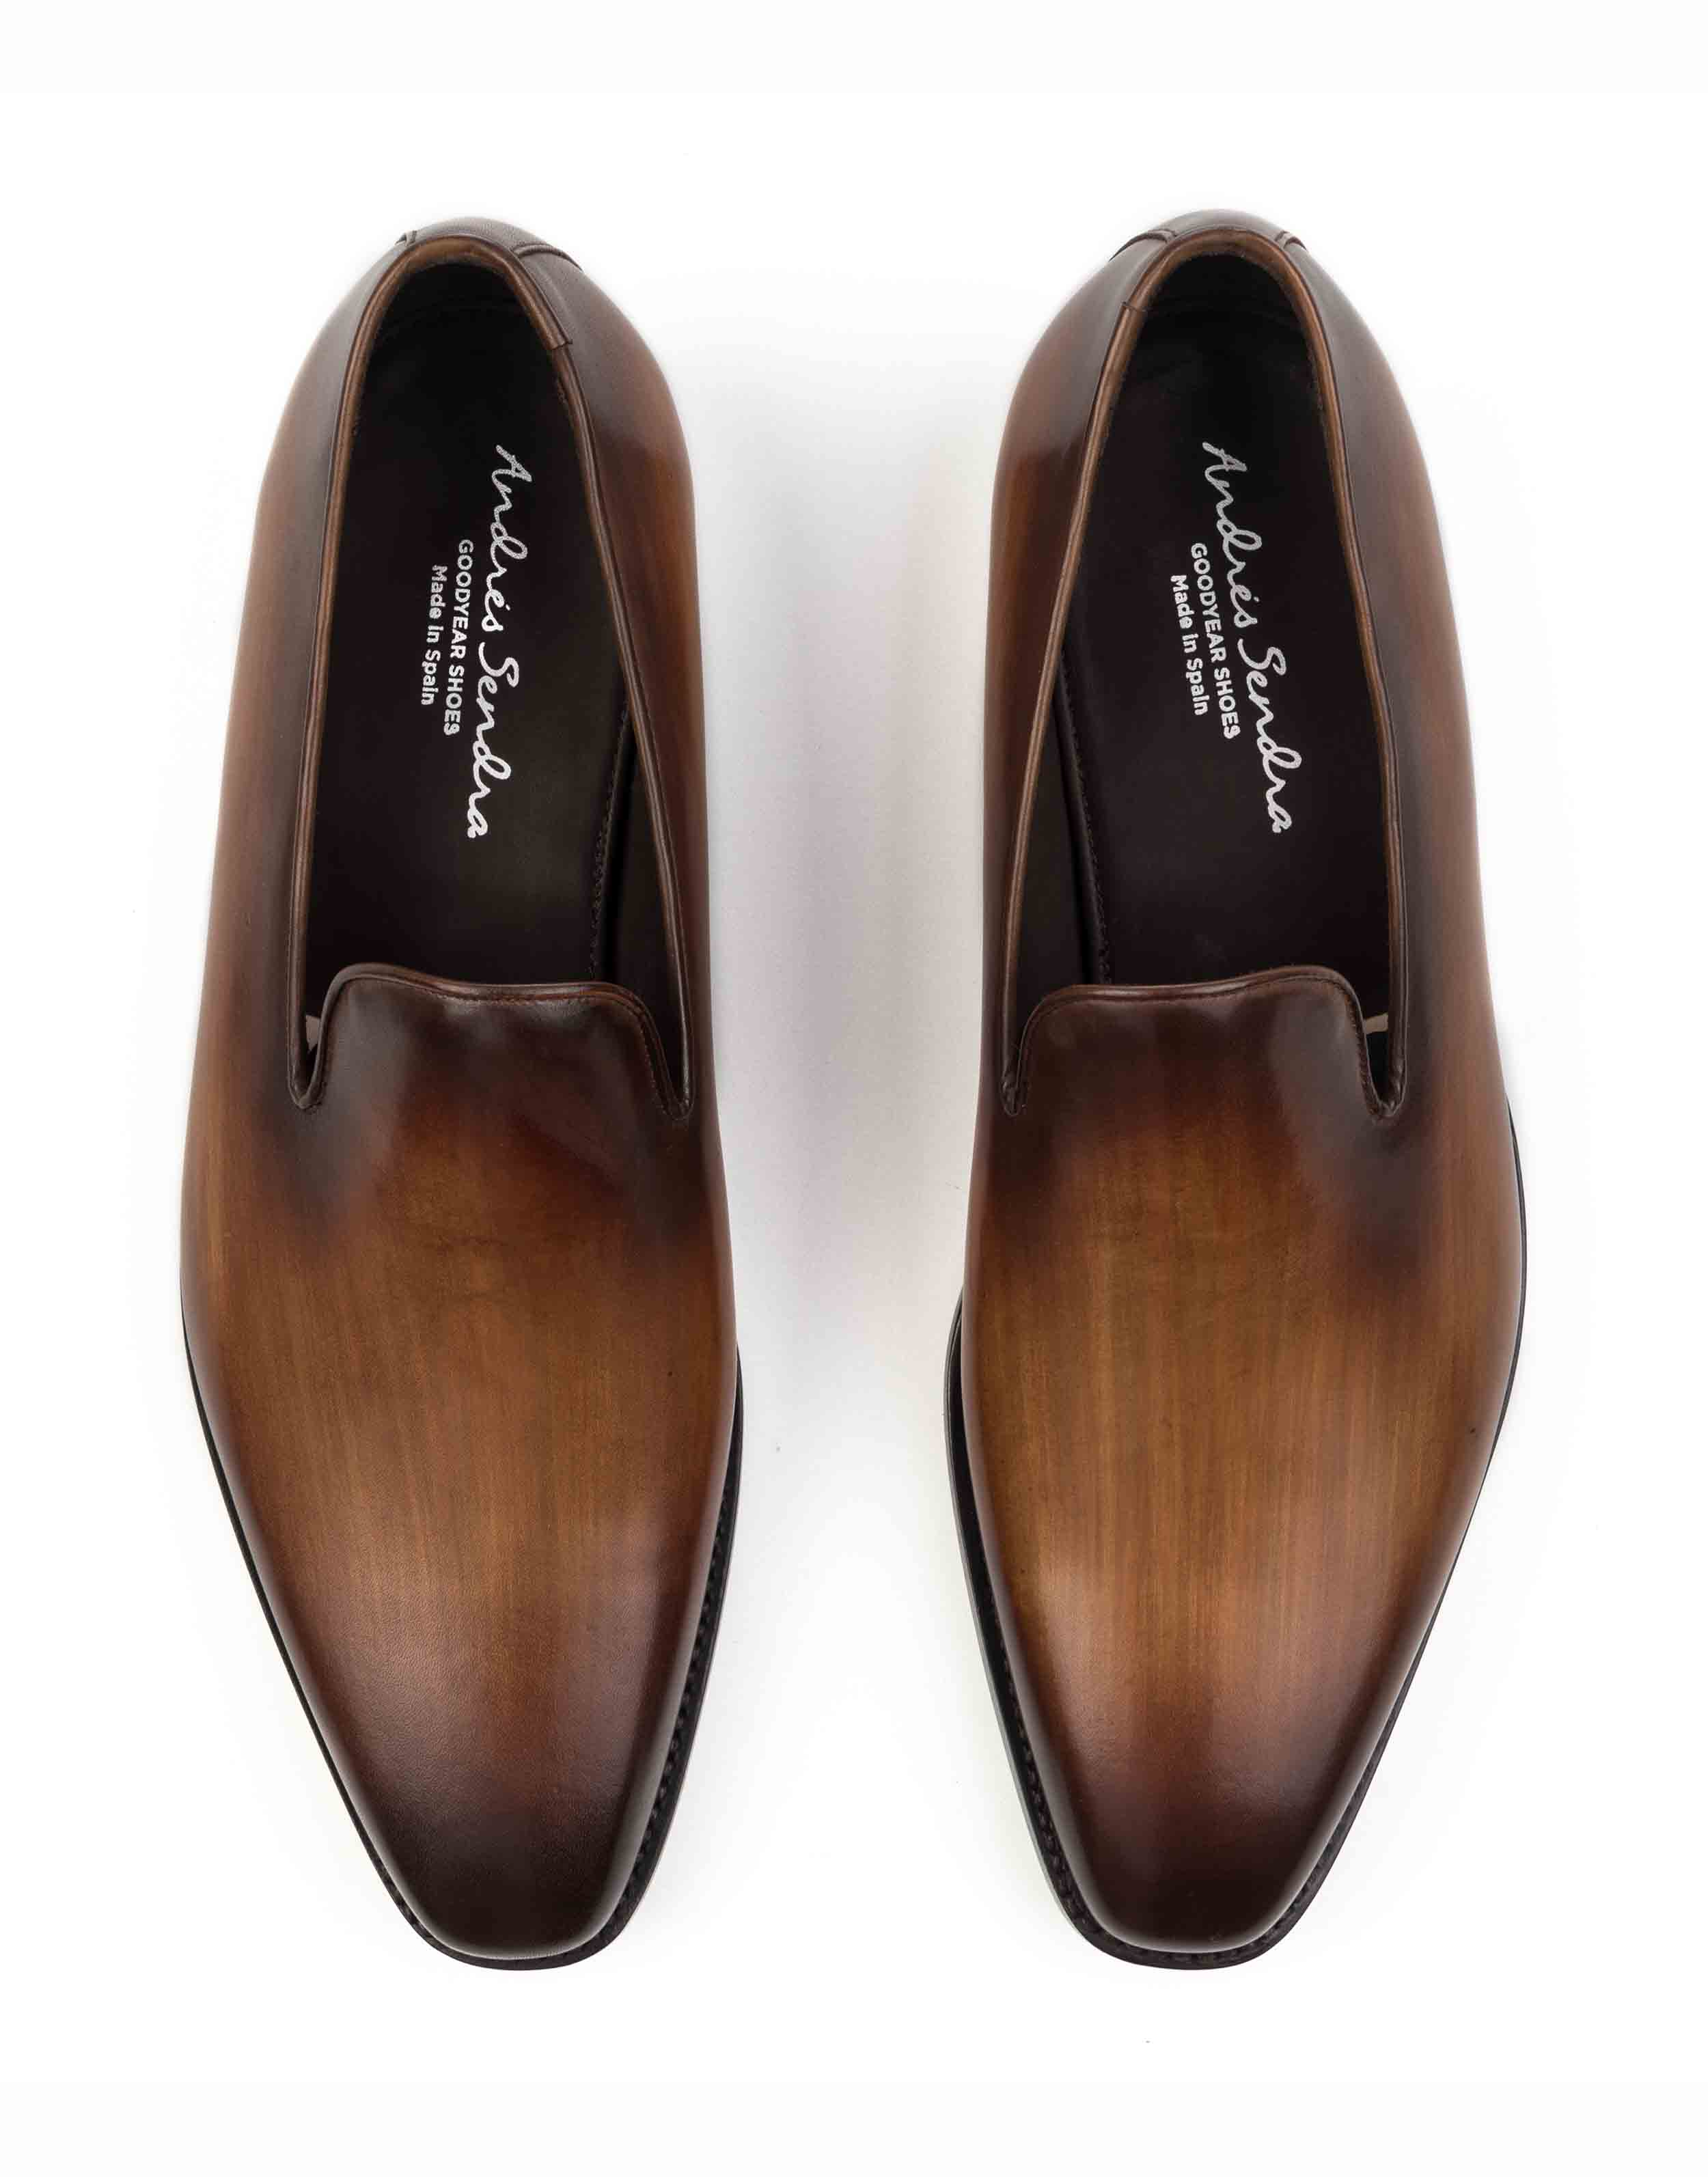 BROWN LOAFERS4